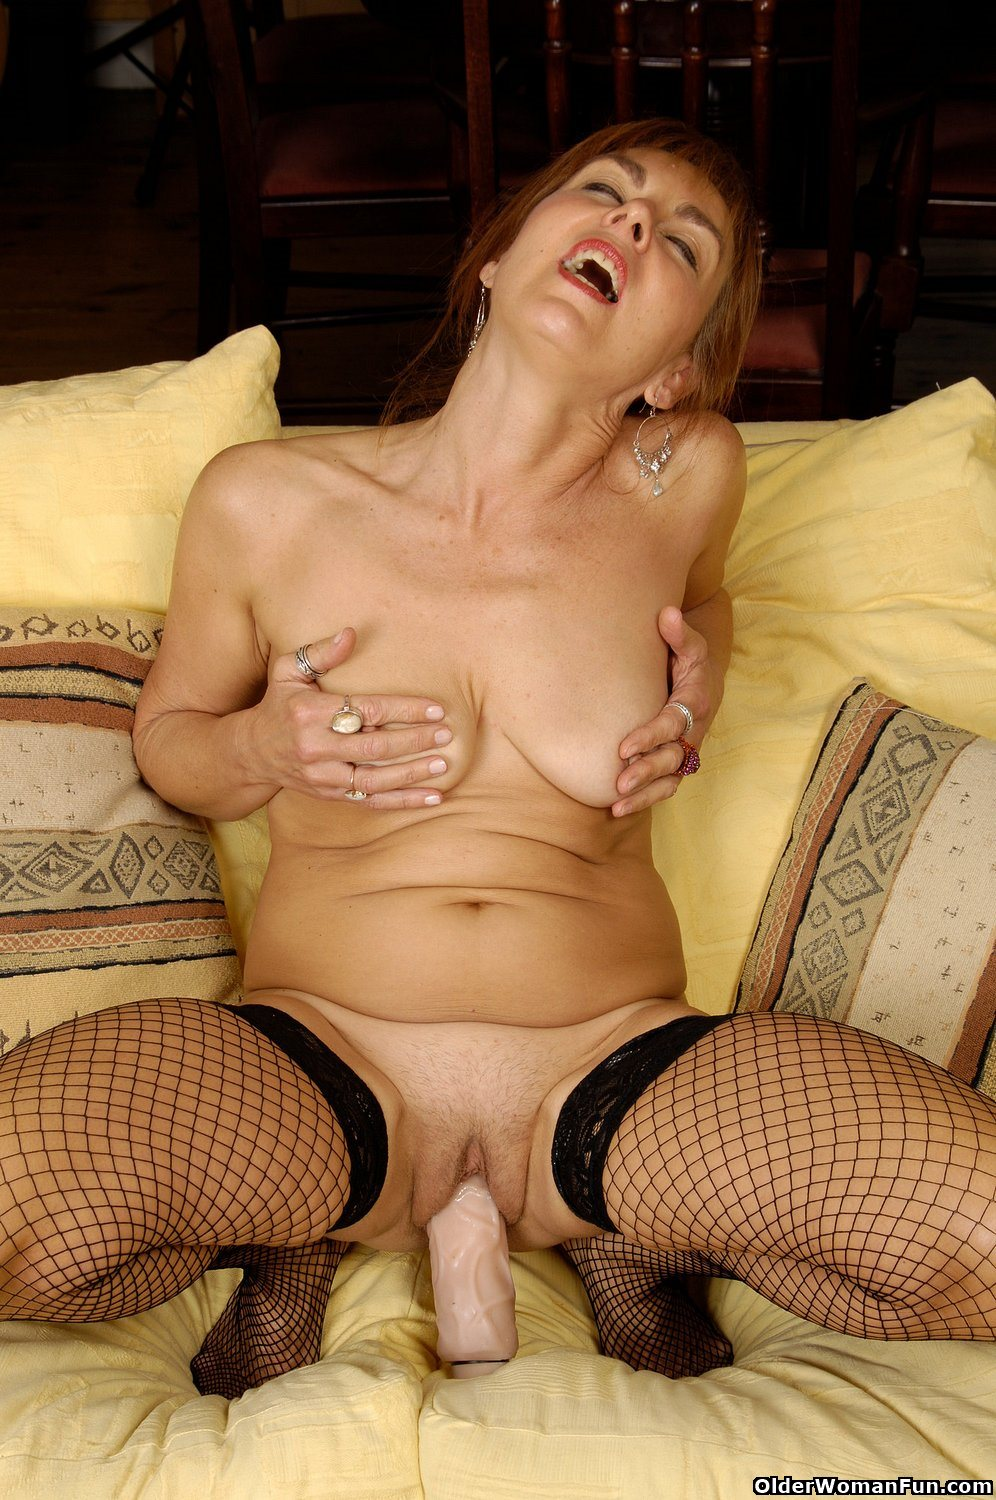 Archiveoffoldwomenblogspotcom Georgie, Mature Woman In -5717